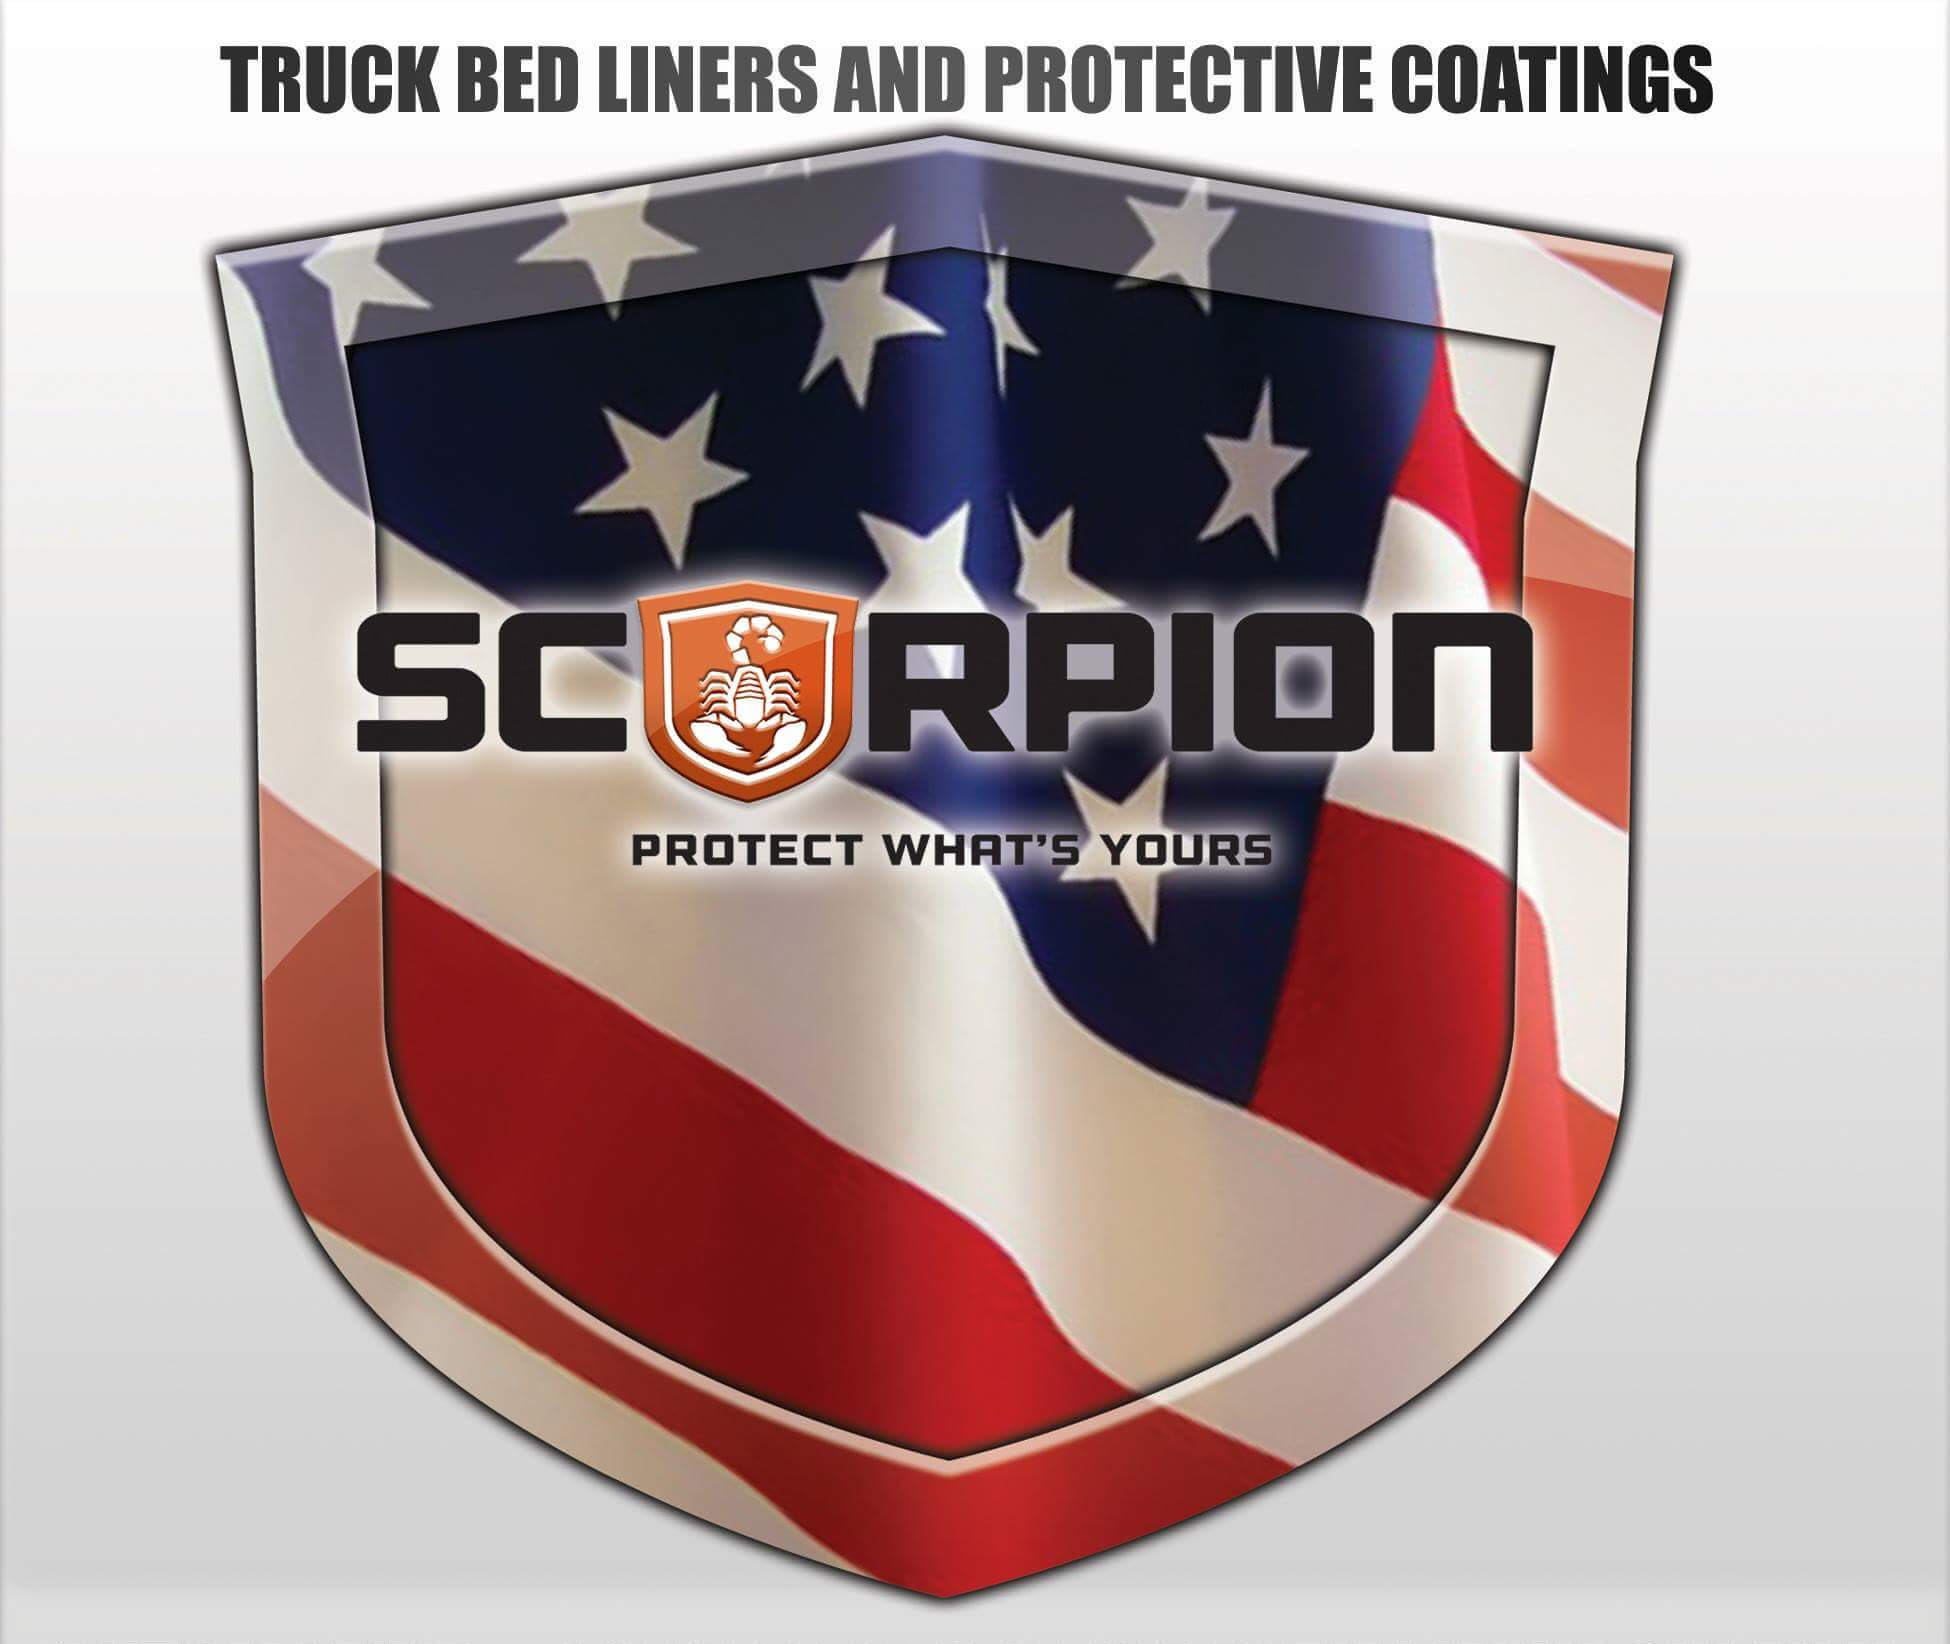 Spray Scorpion Truck Bed Liners